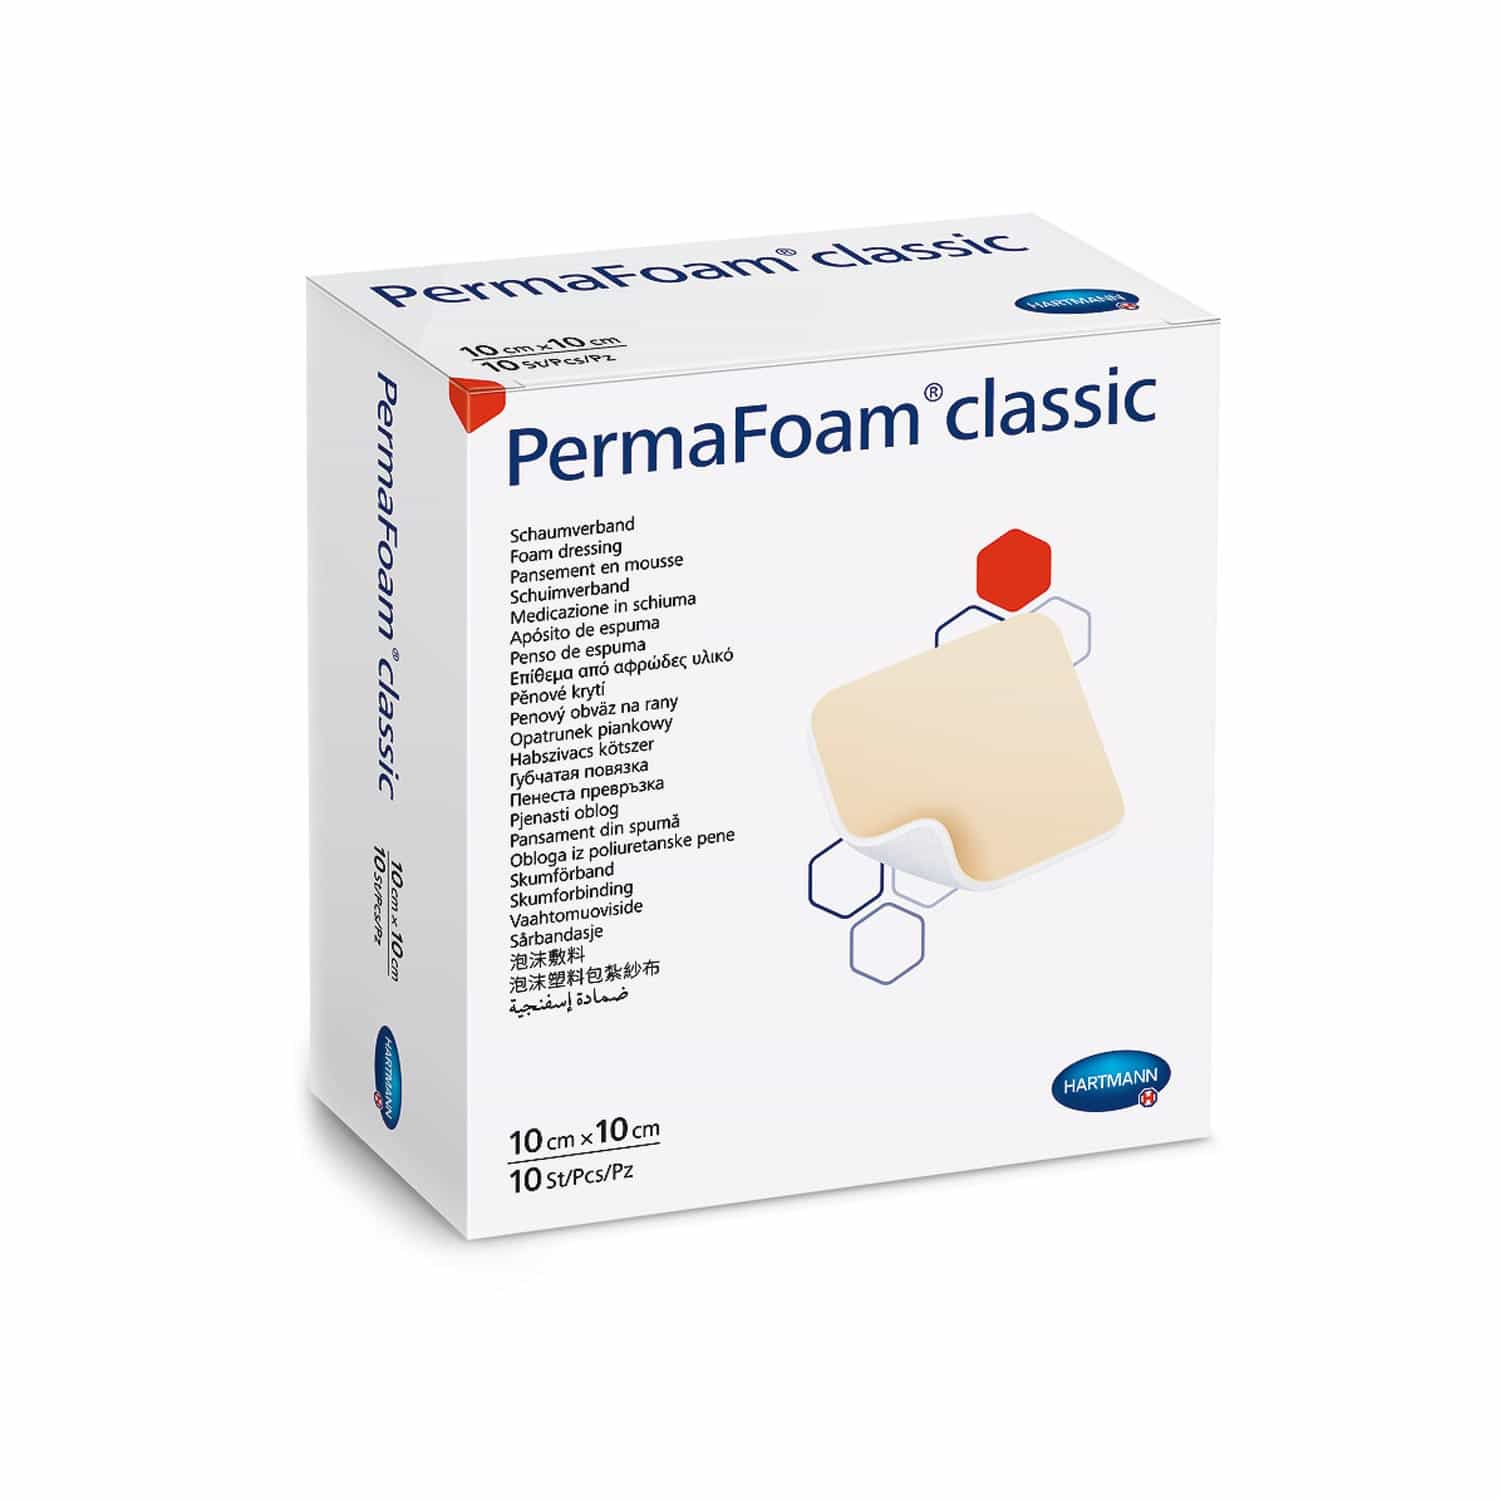 https://static.praxisdienst.com/out/pictures/generated/product/1/1500_1500_100/140100_hartmann_permafoam_classic_1.jpg